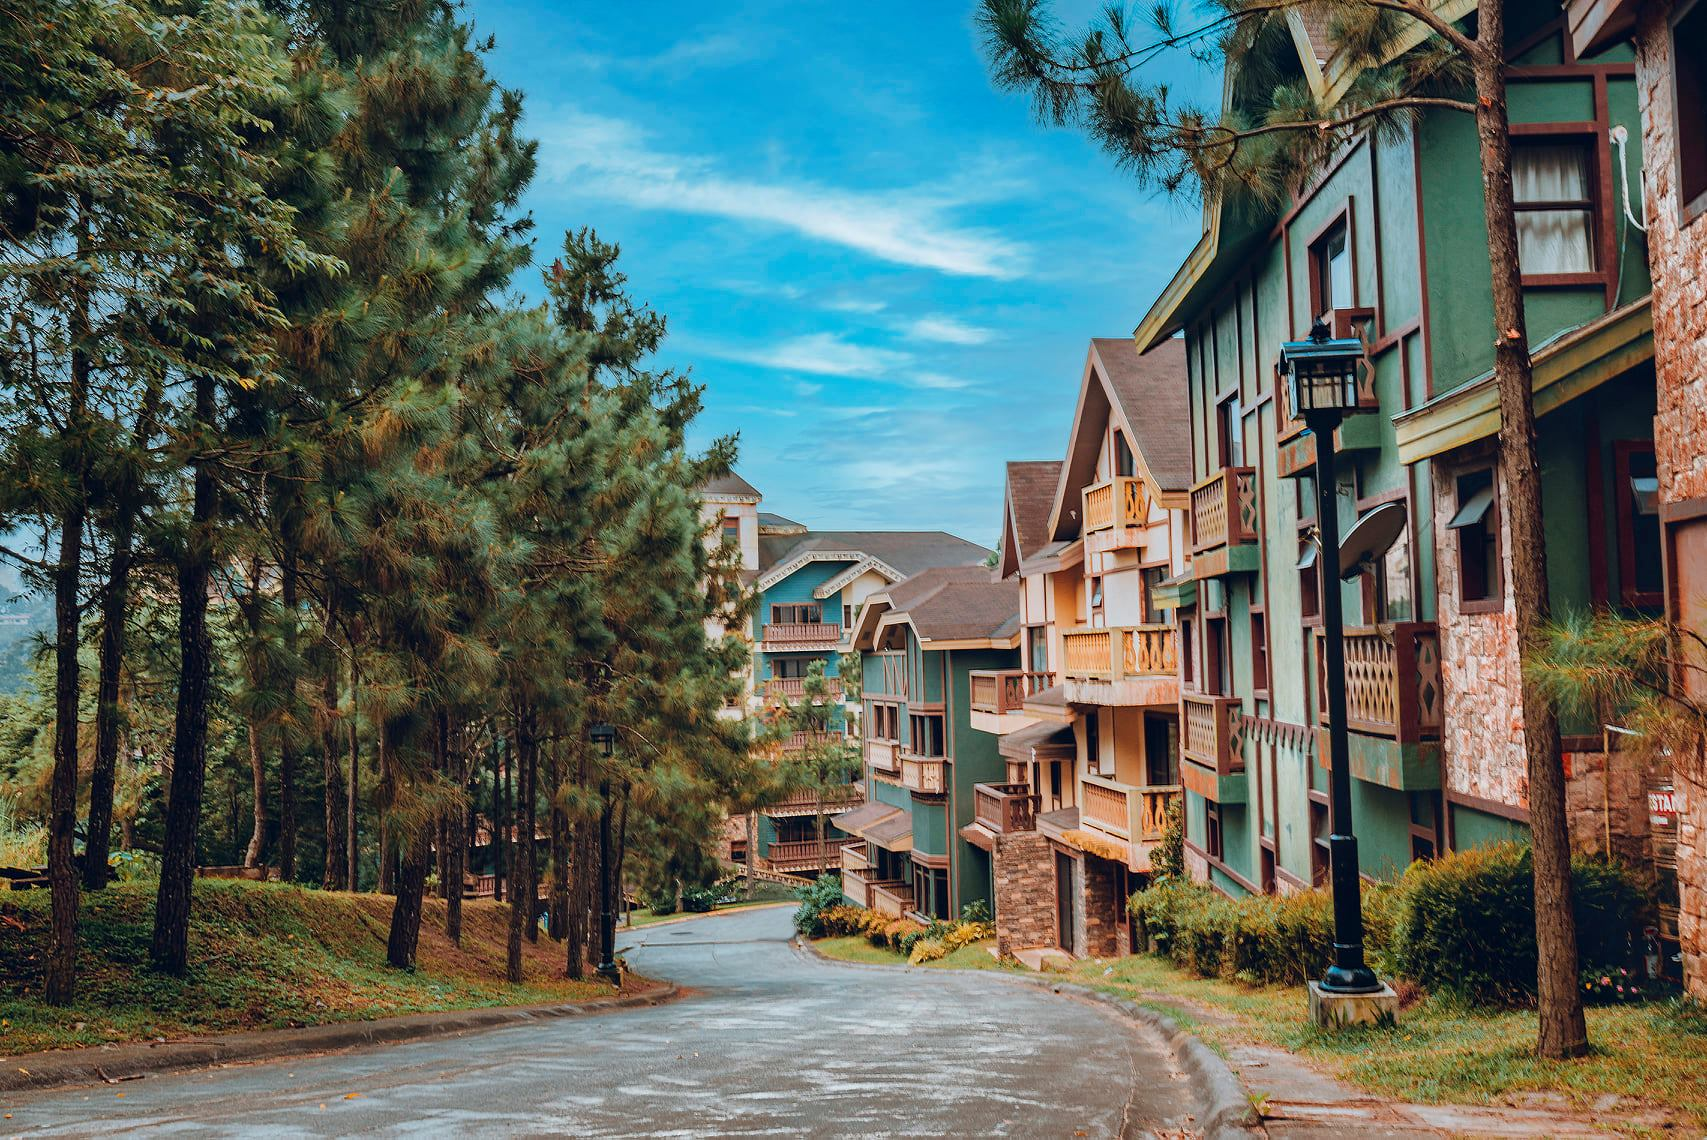 Swiss quadrilles mountain chalets surrounded by pine trees in cool climate of crosswinds luxury condominium developments in tagaytay | luxury lifestyle and homes by brittany corporation